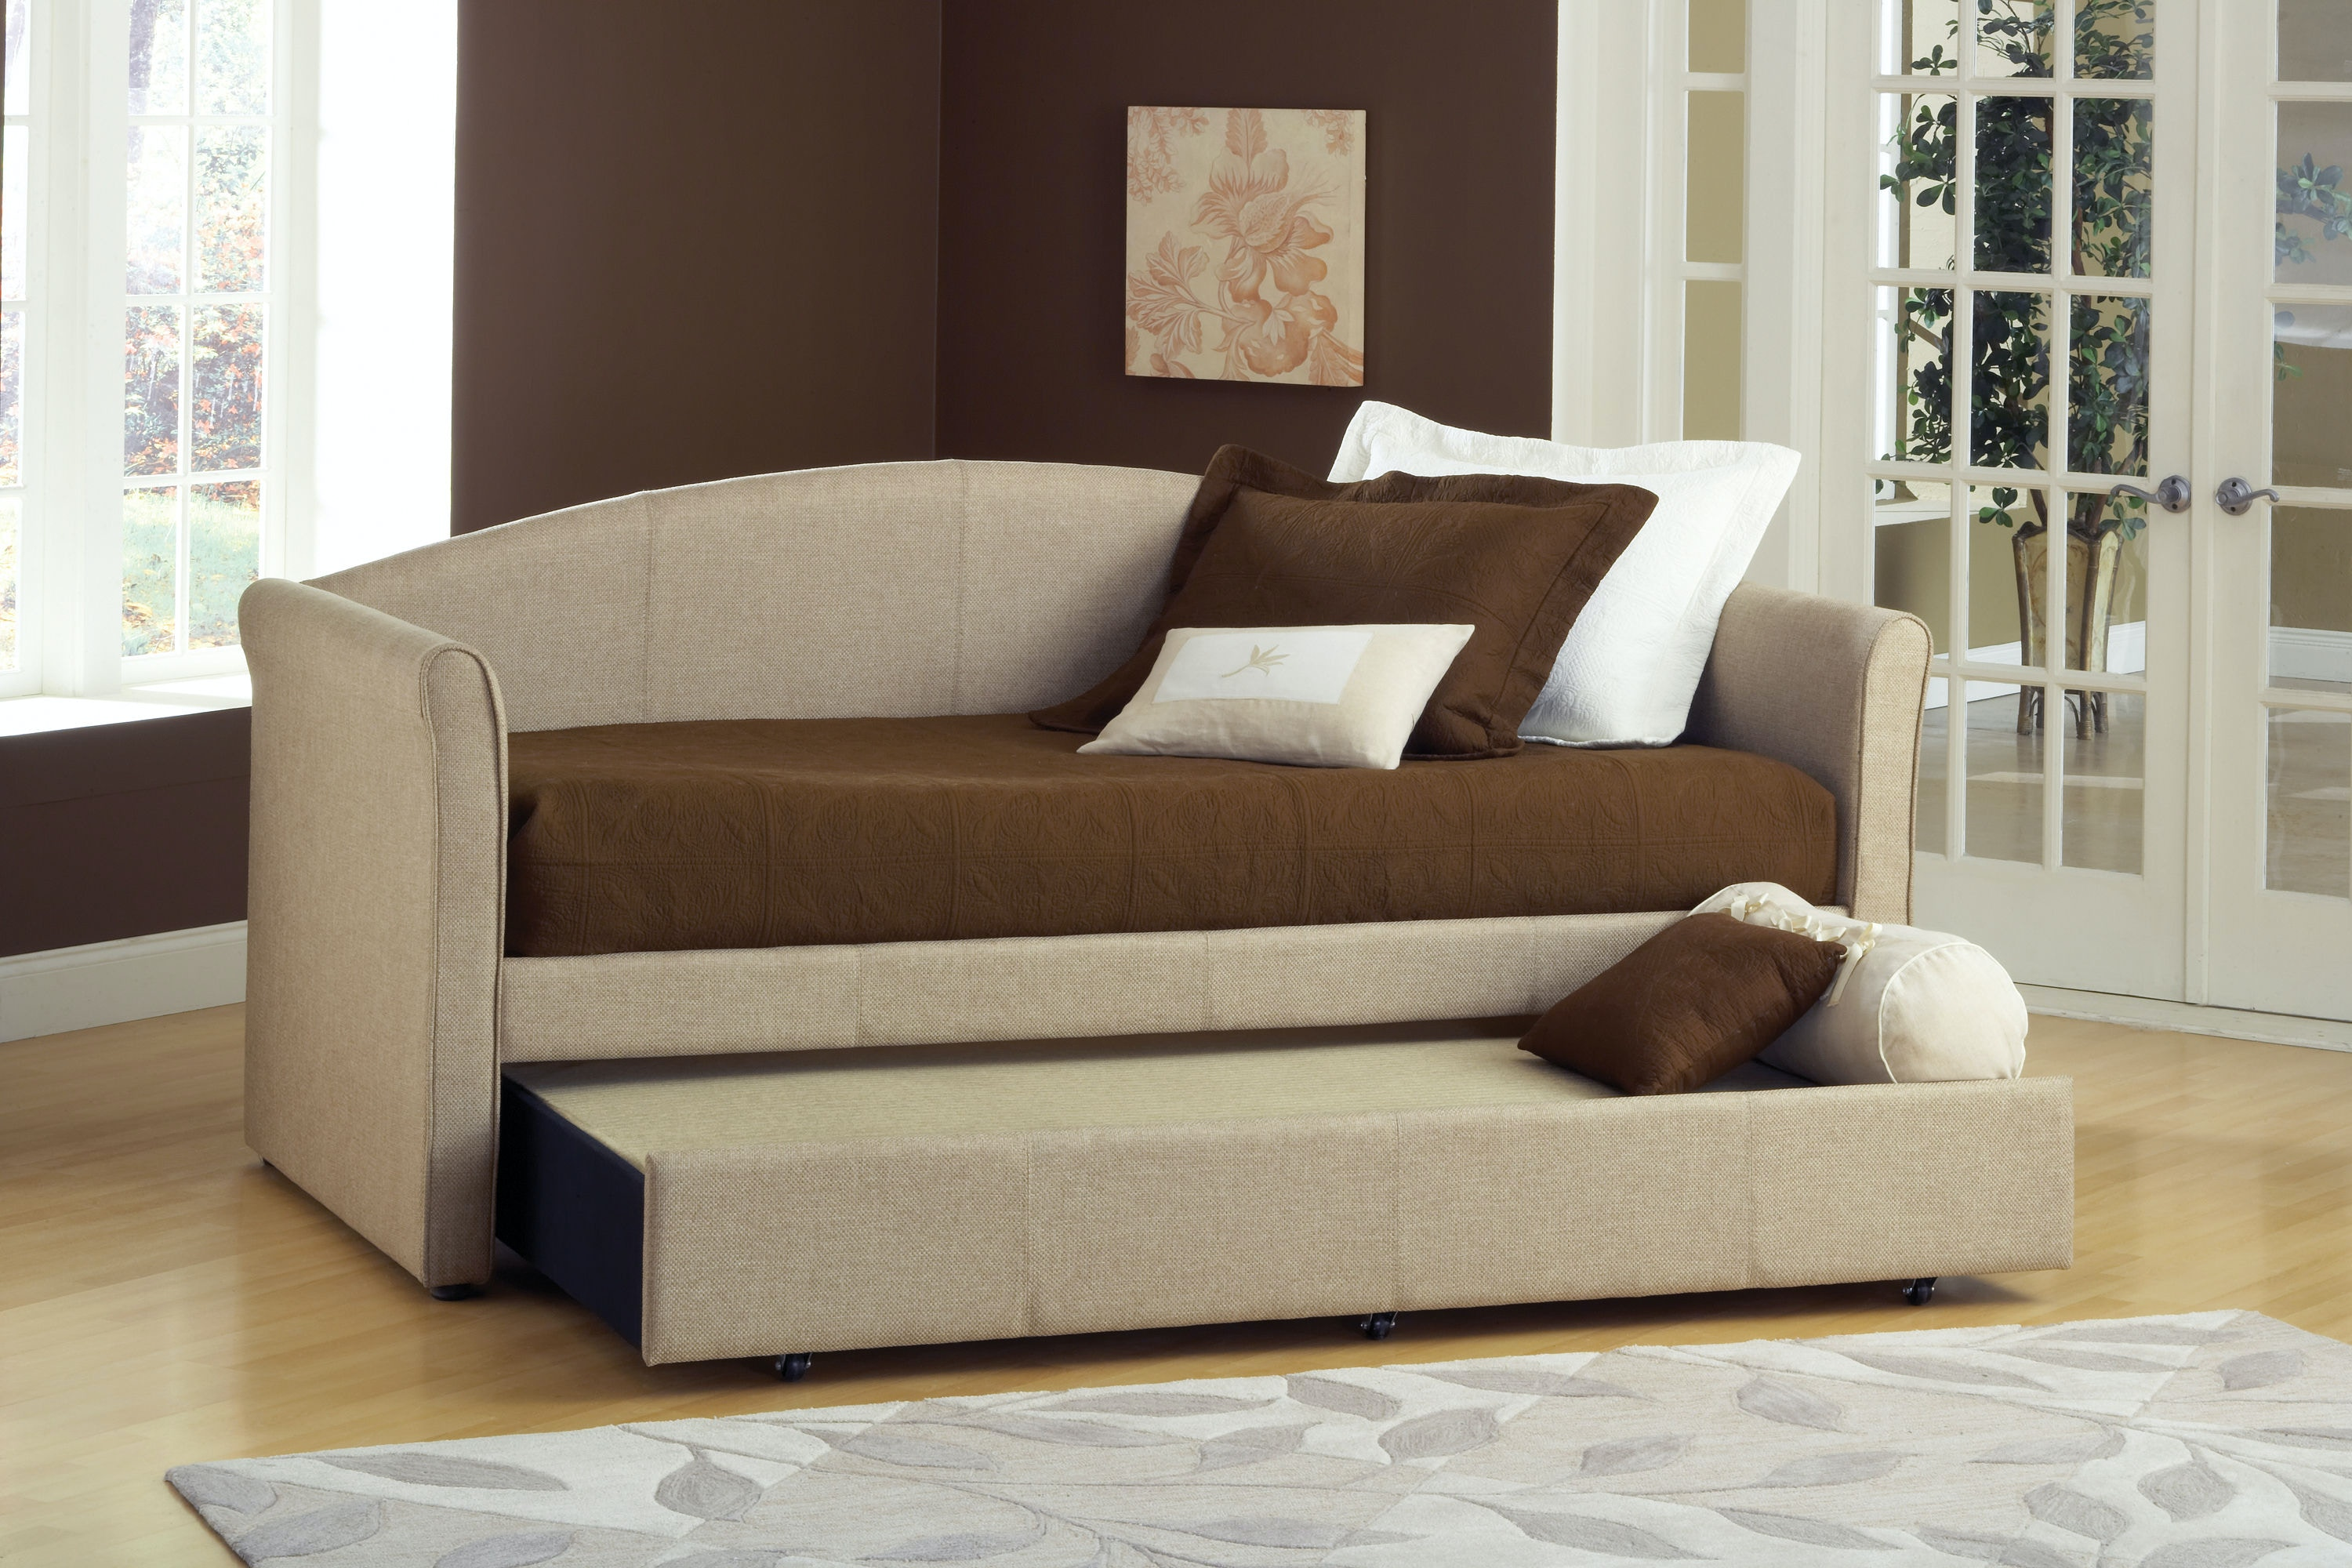 Hillsdale Furniture Bedroom Siesta Daybed   Trundle 1017 030 At Andrews  Furniture